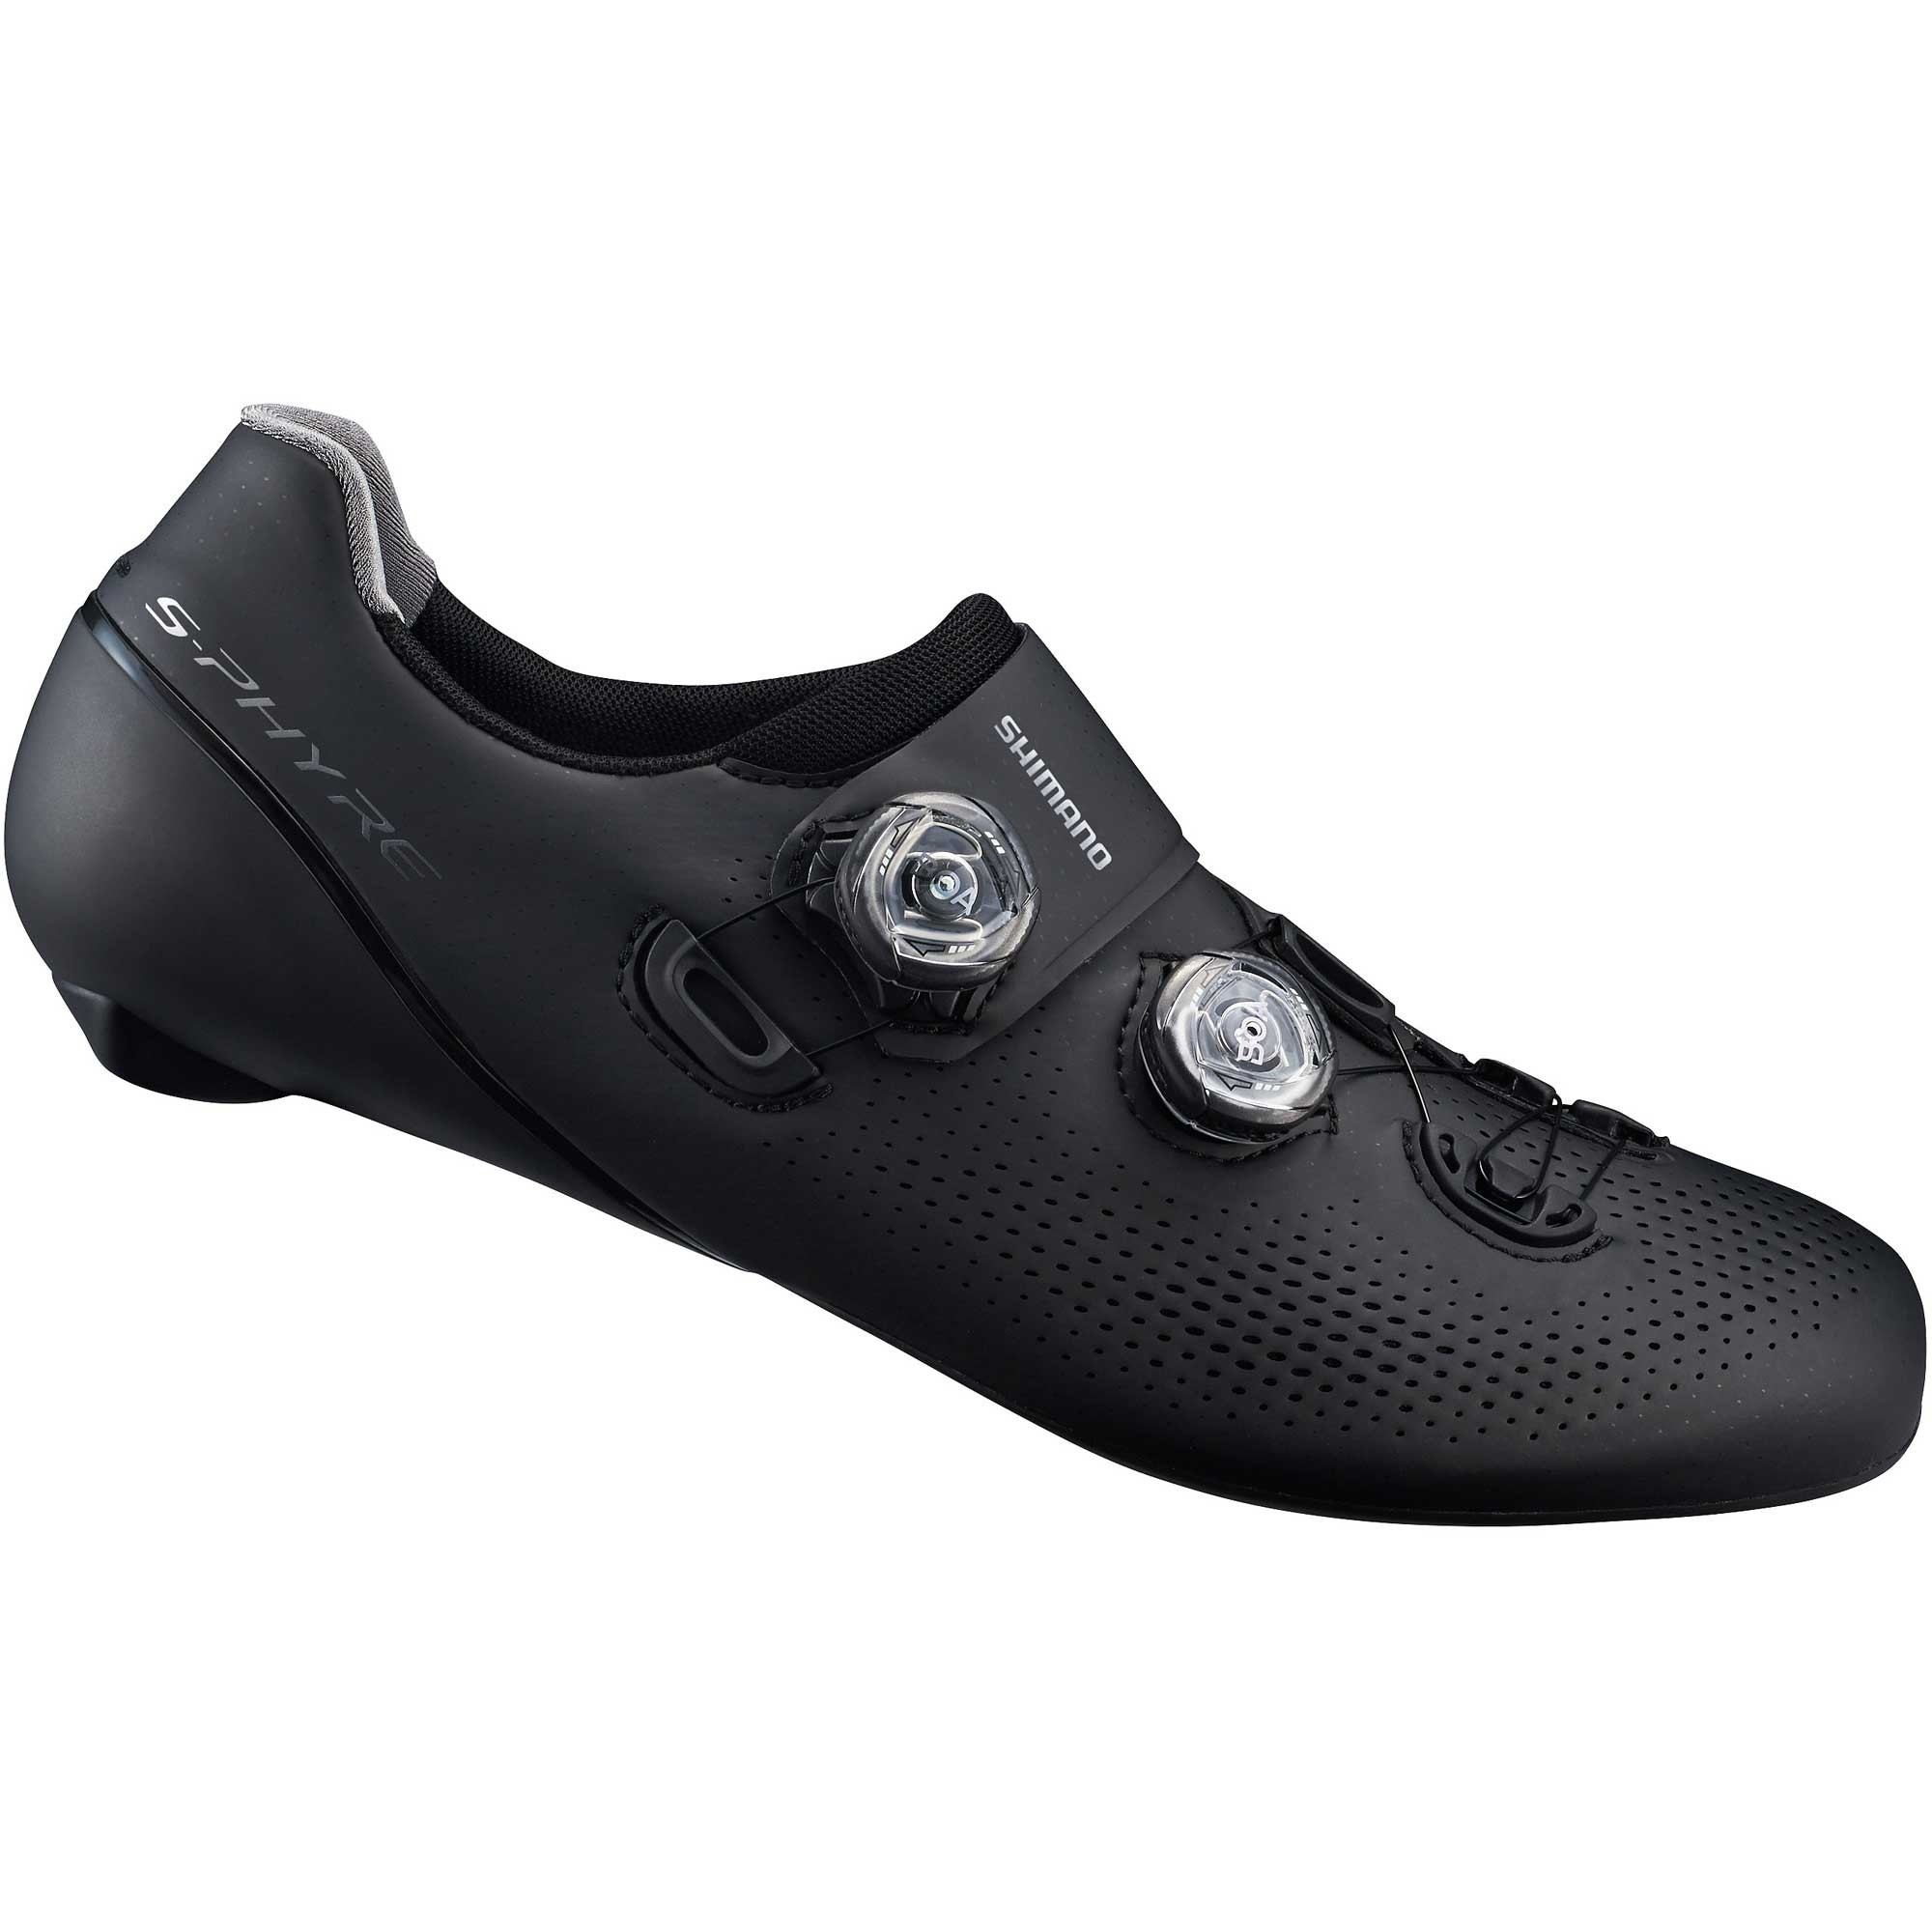 Shimano RC9 SPD-SL S-Phyre Road Shoes   Sigma Sports